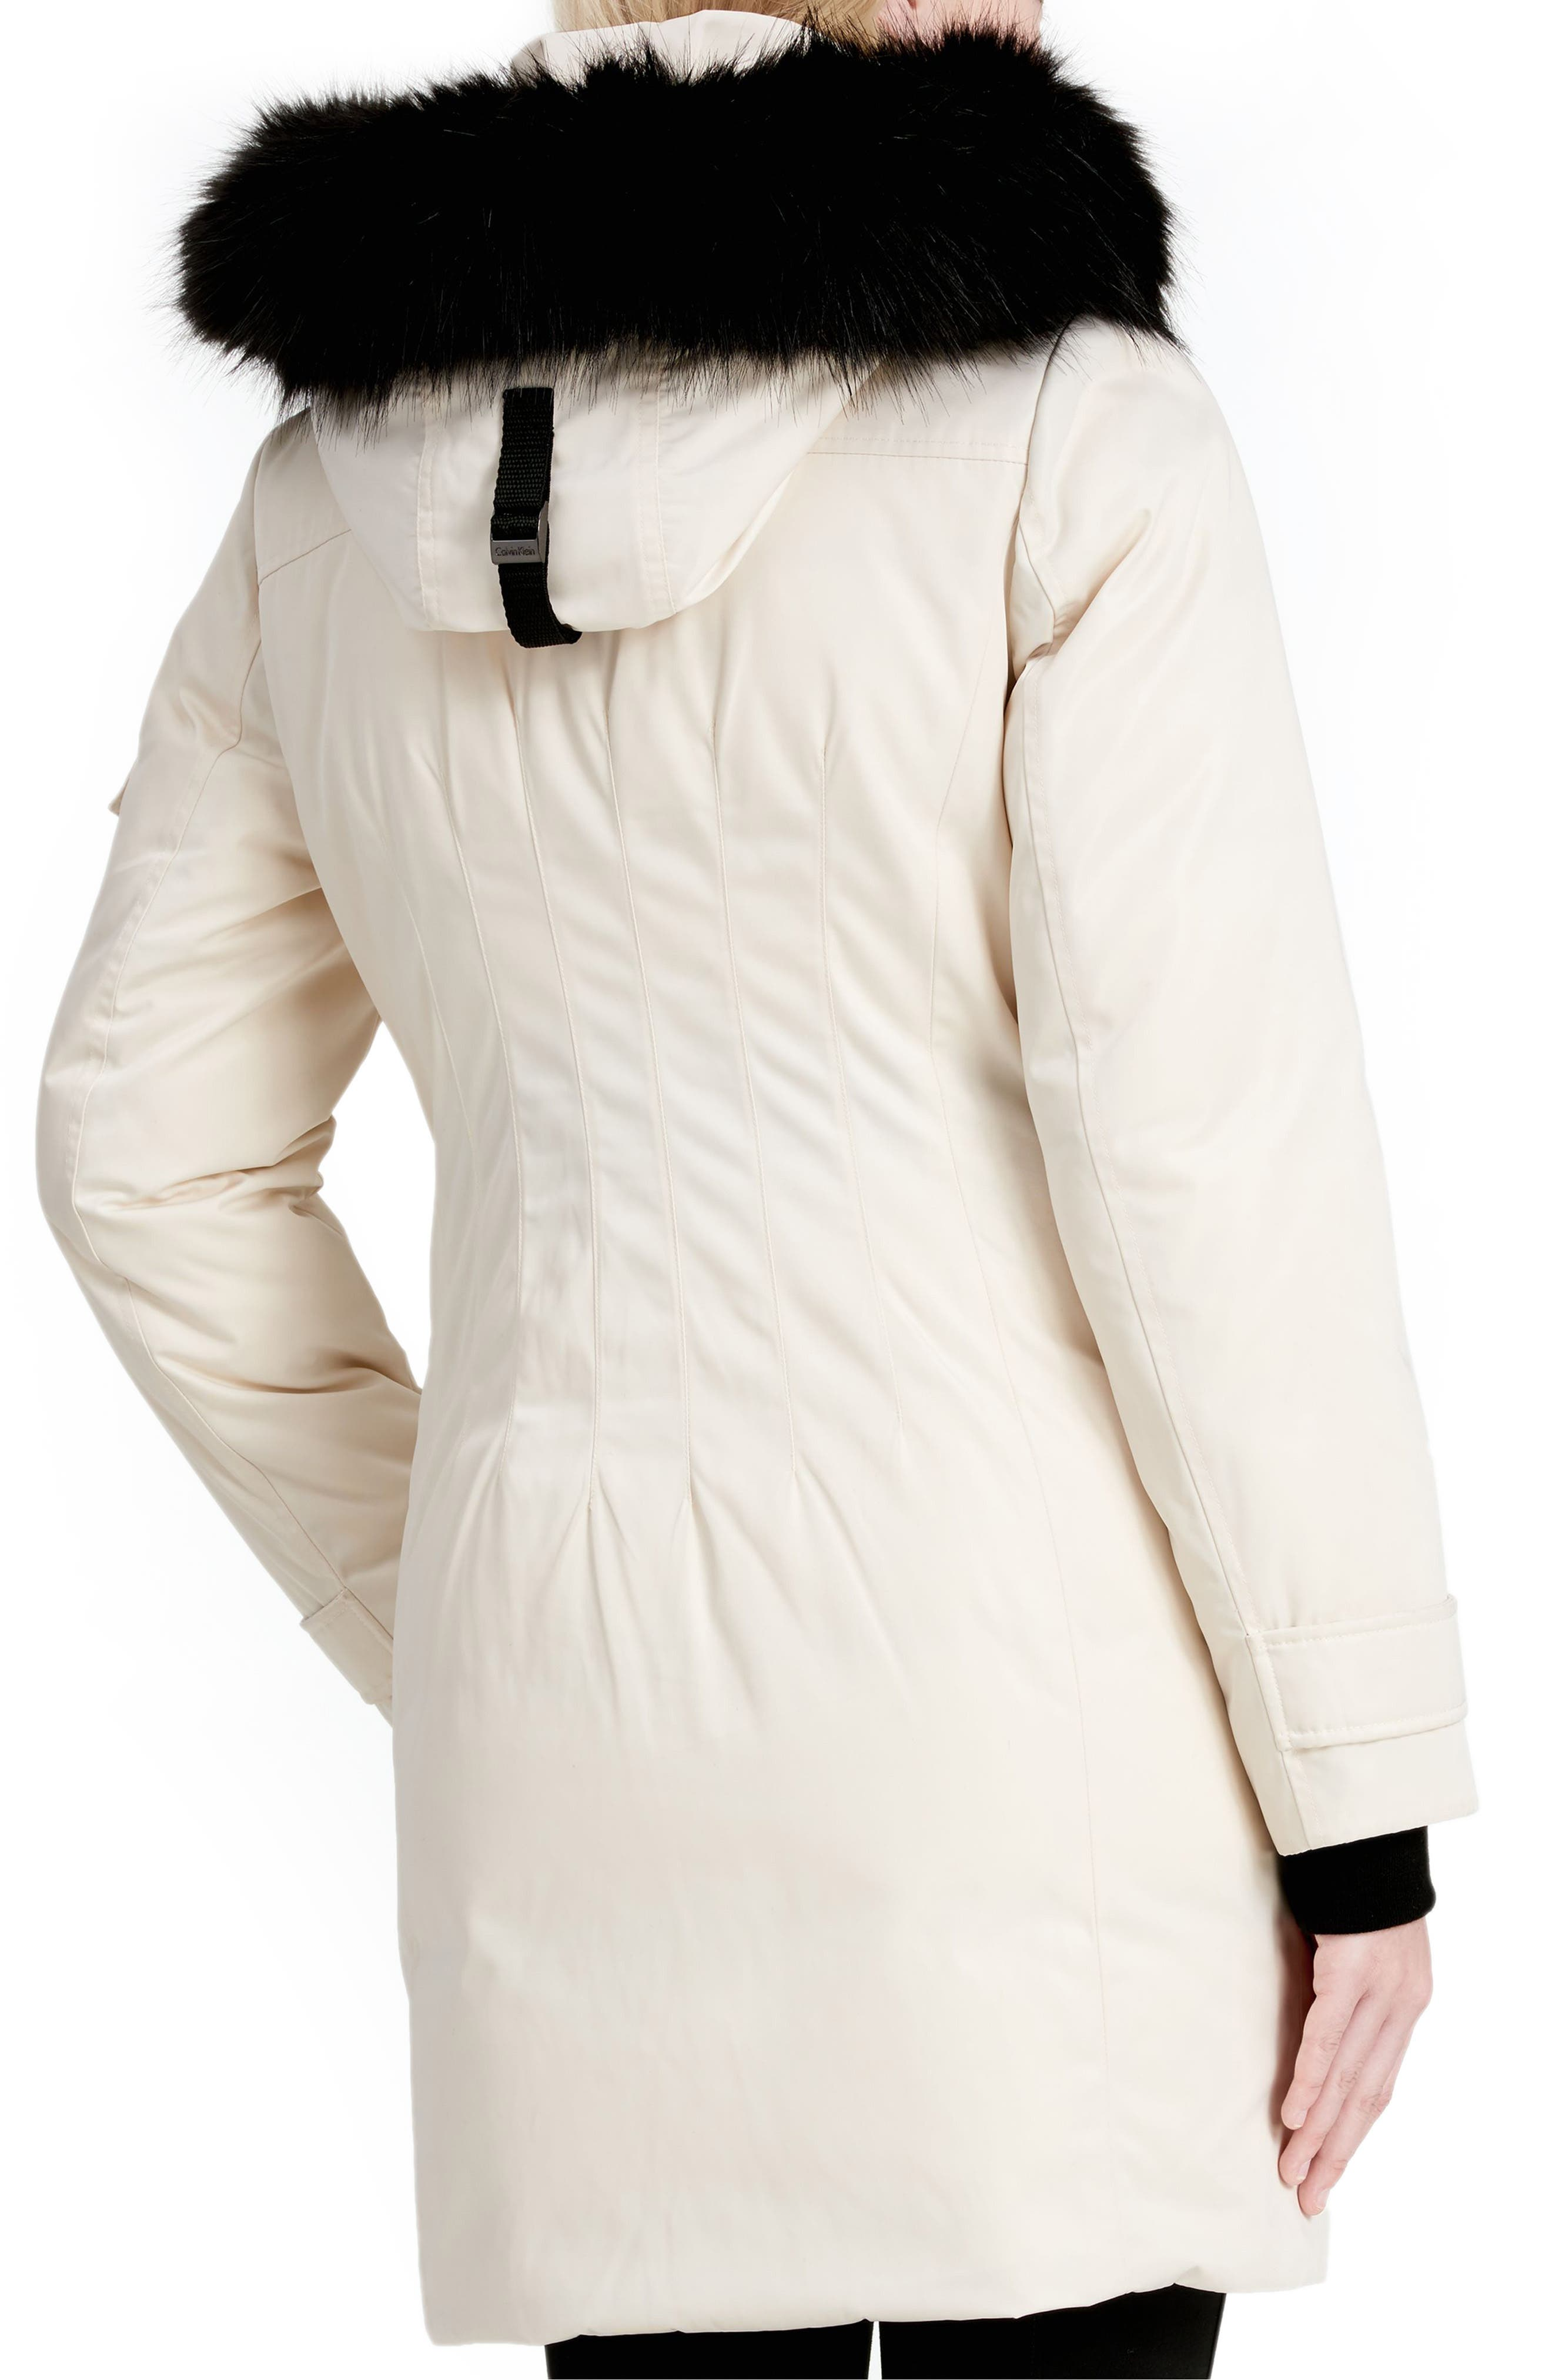 Calvien Klein Hooded Down Parka with Removable Faux Fur Collar,                             Alternate thumbnail 4, color,